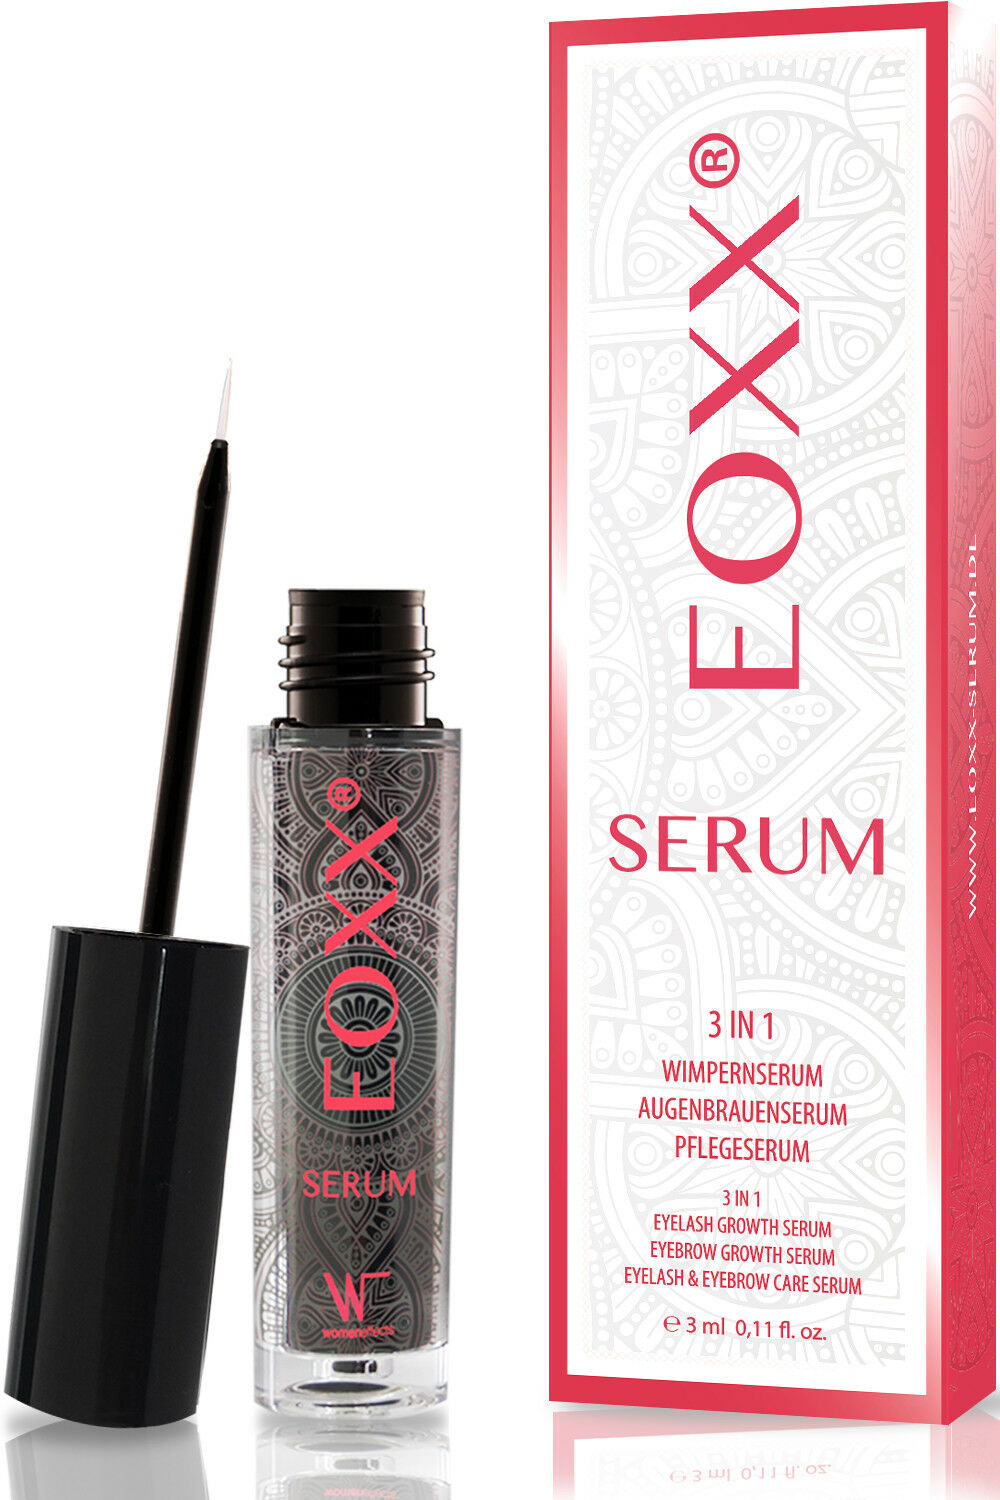 eoxx serum wimpernserum f r nat rlich lange wimpern eur 48 90 picclick de. Black Bedroom Furniture Sets. Home Design Ideas